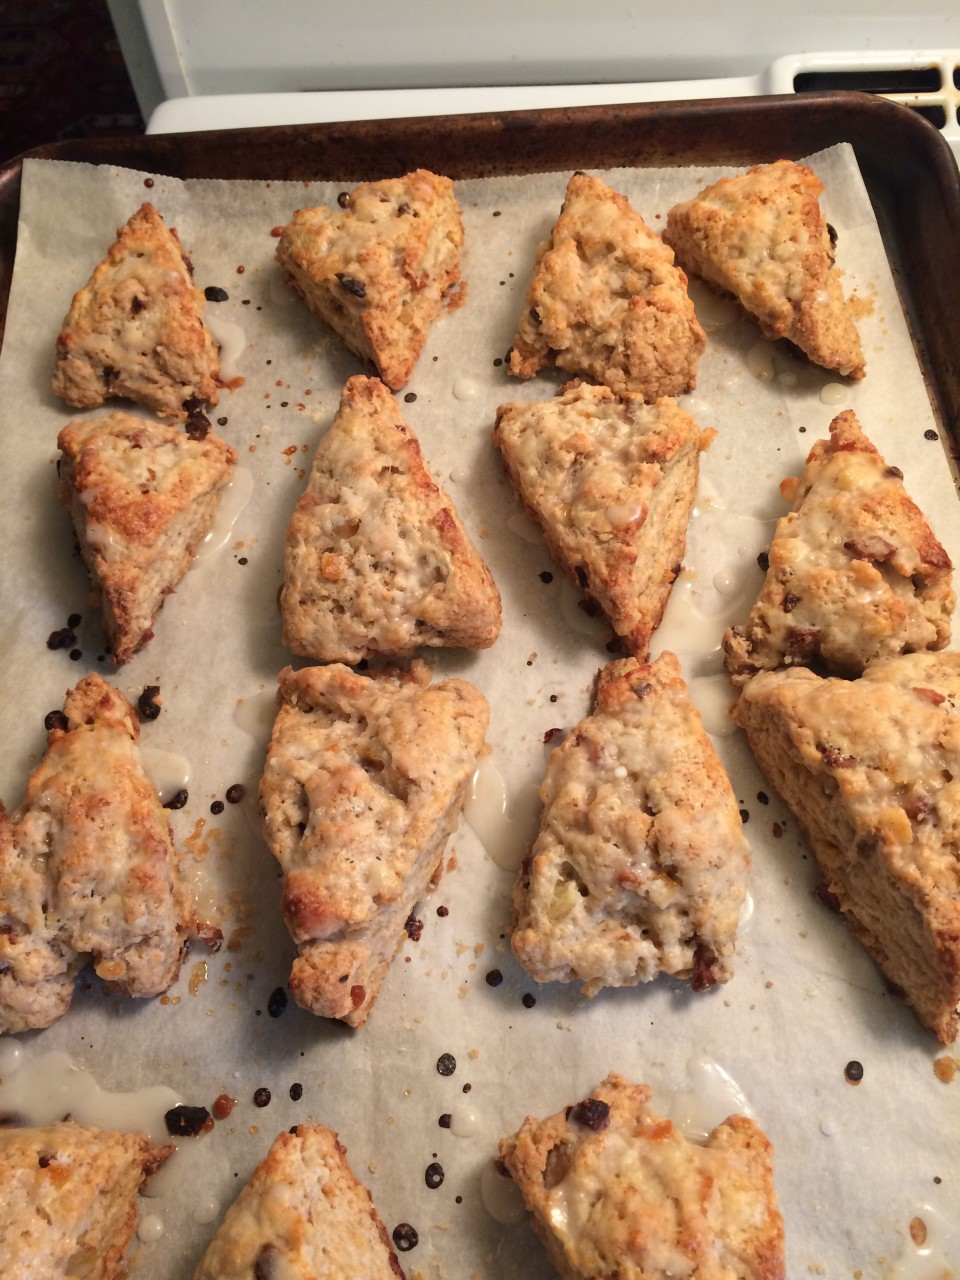 Candied Orange Peel and Citrus Scones